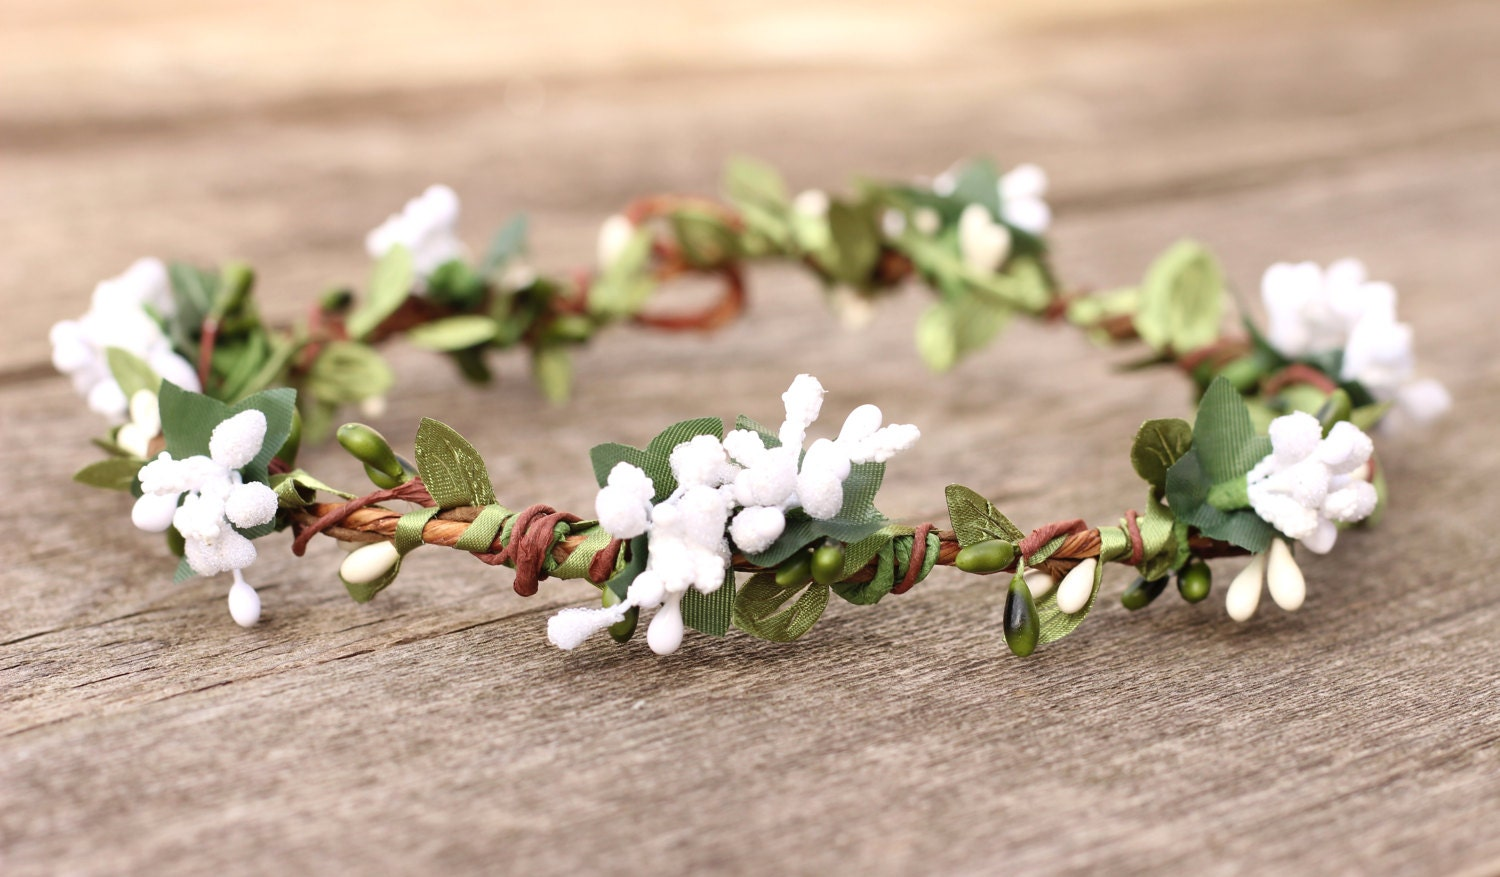 Artificial jasmine flowers for hair pcs lot cm fabric flower cherry artificial jasmine flowers for hair izmirmasajfo